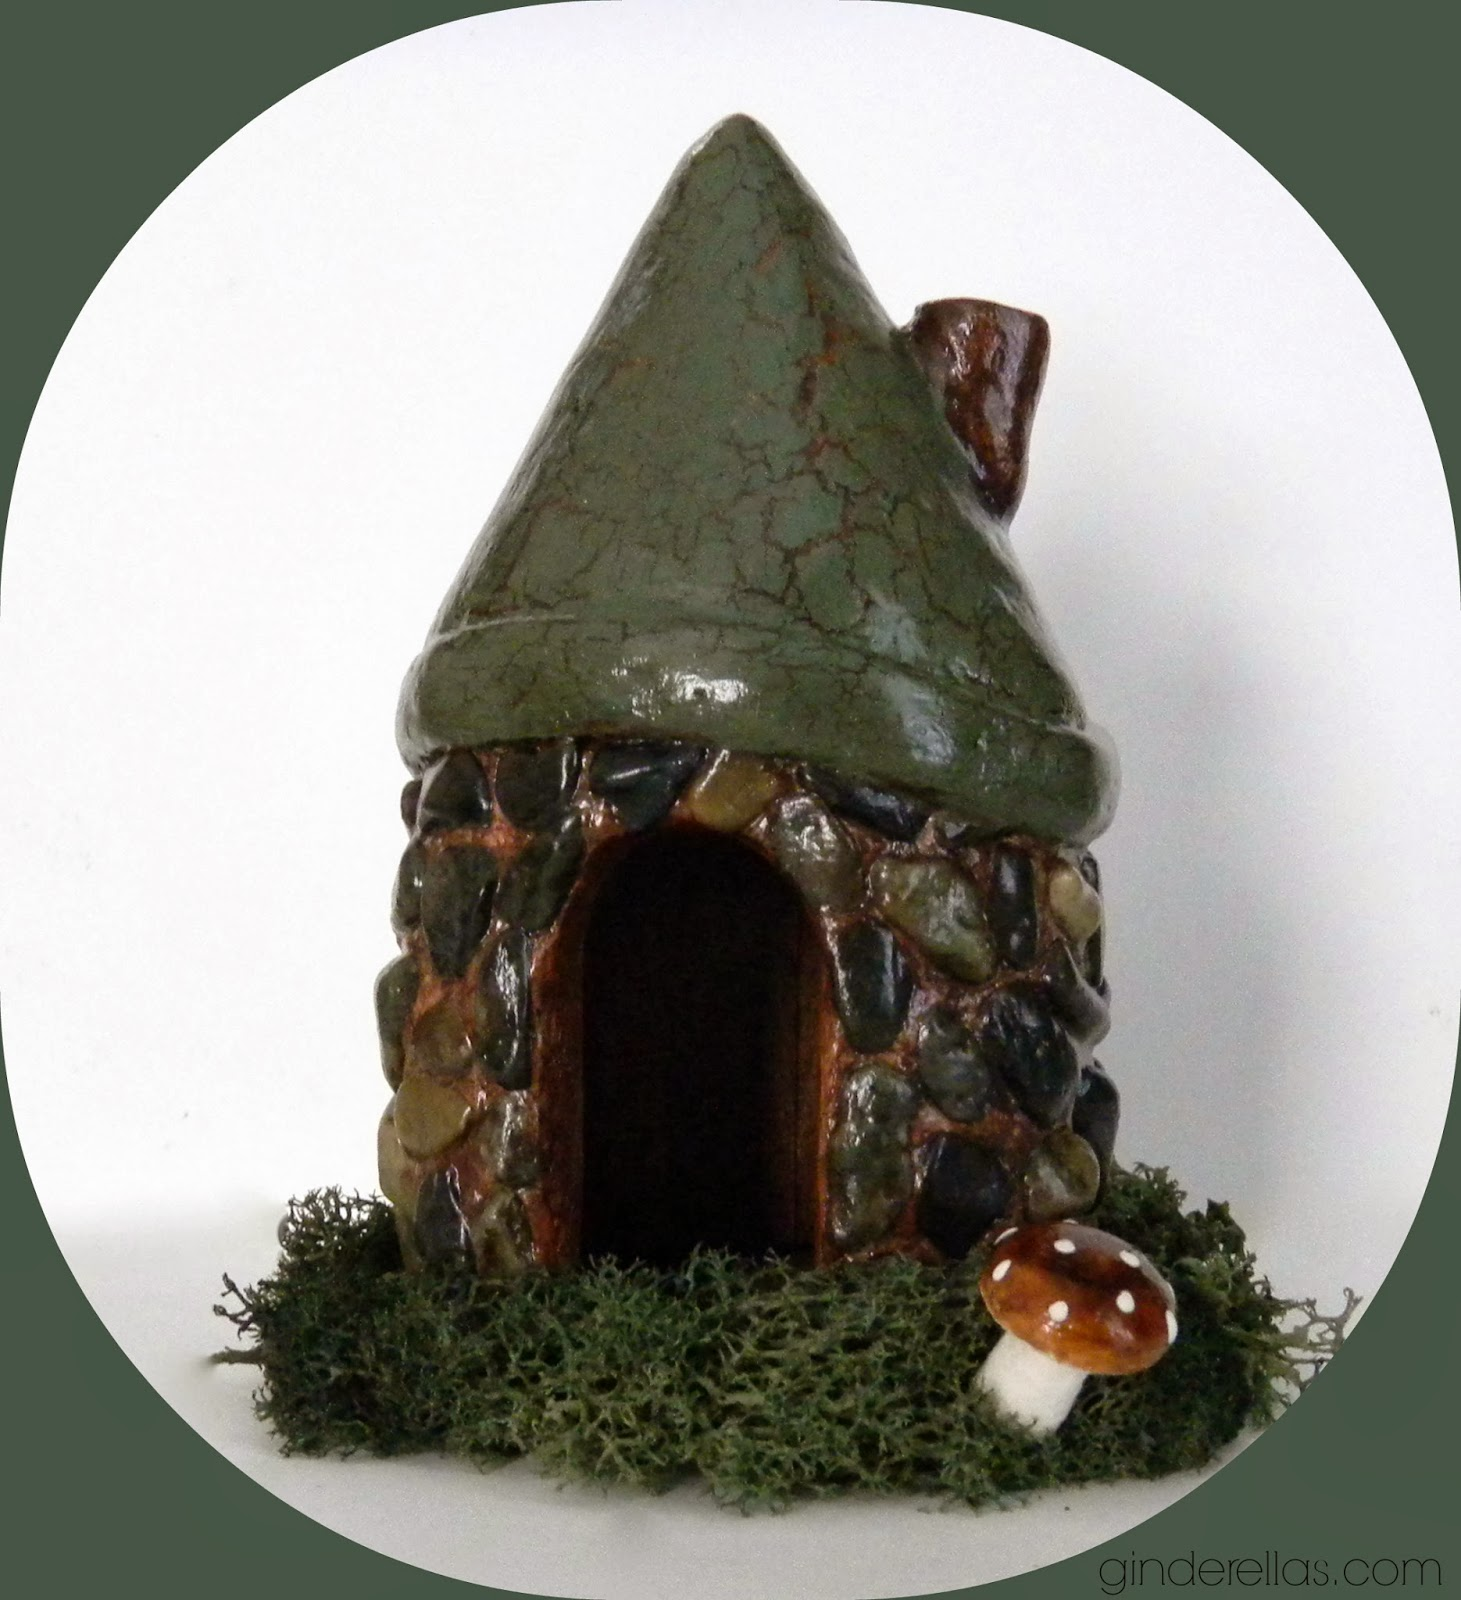 Ginderellas Fairy Garden House